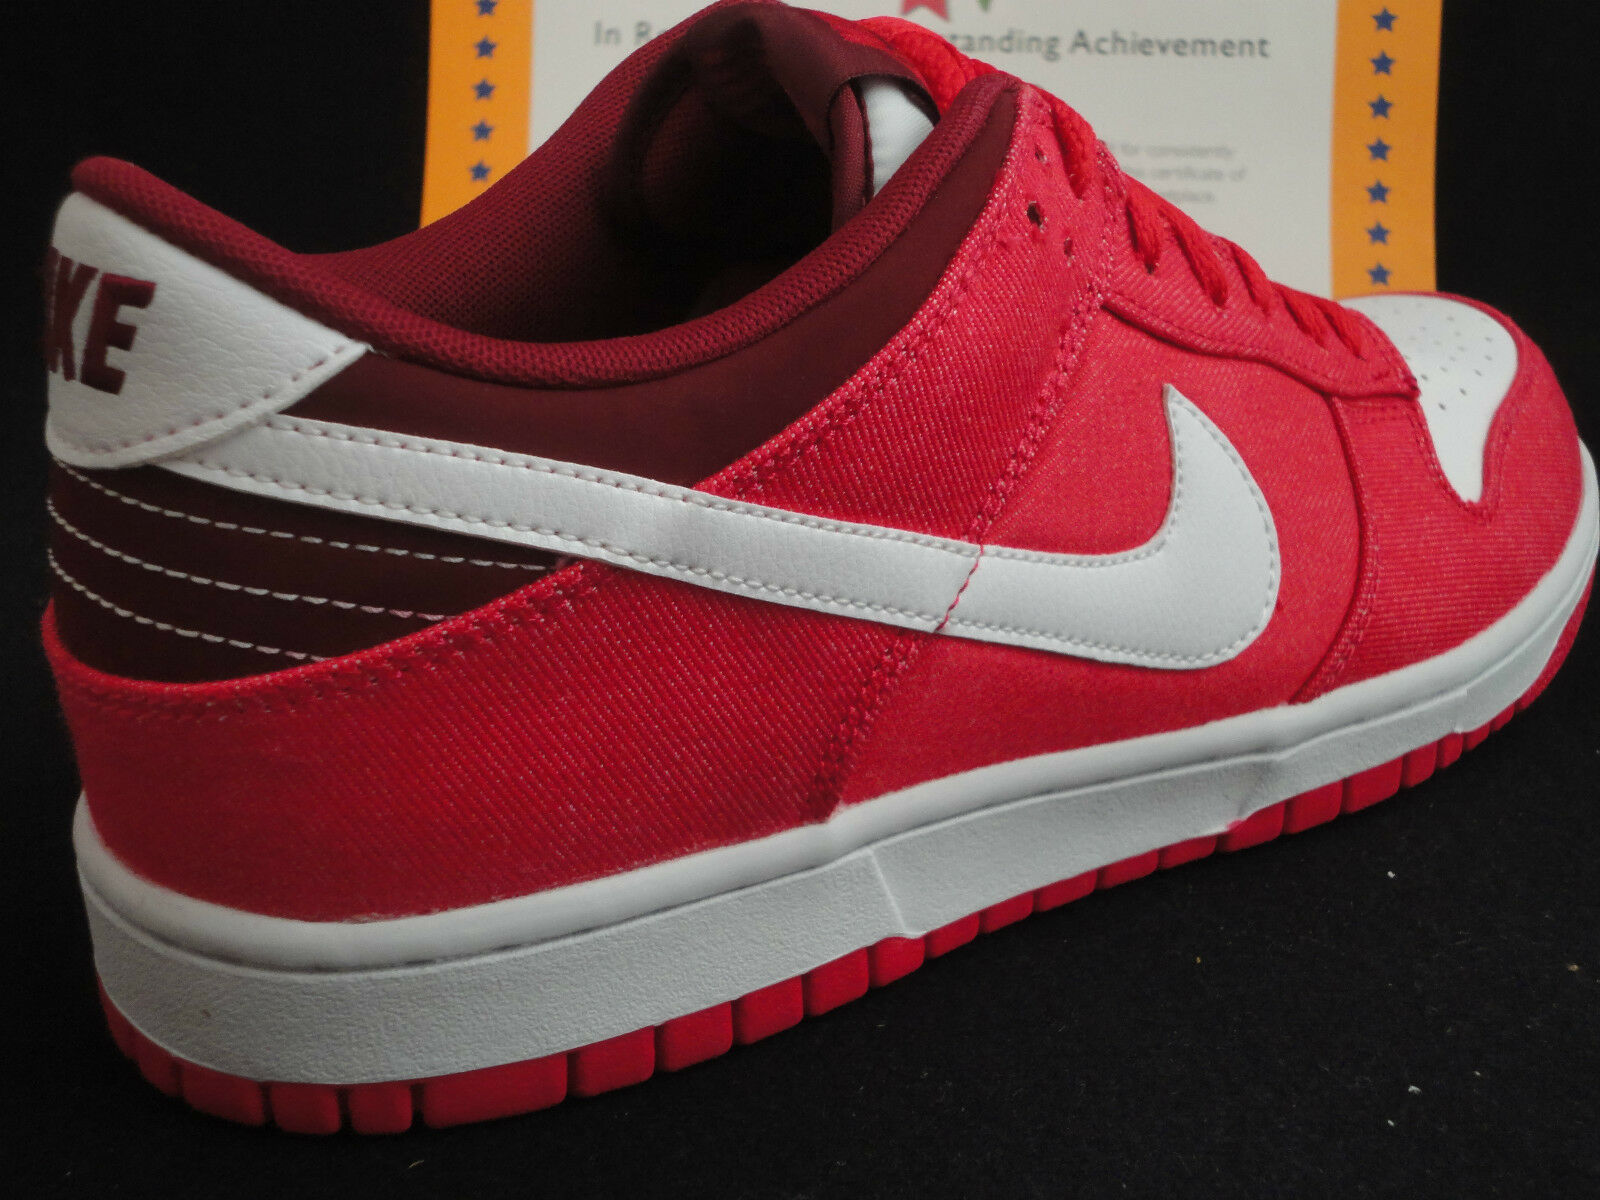 Nike Dunk Low, Denim   Leather, 2012, Hyper Red   White, 318019 604, Sz 10.5